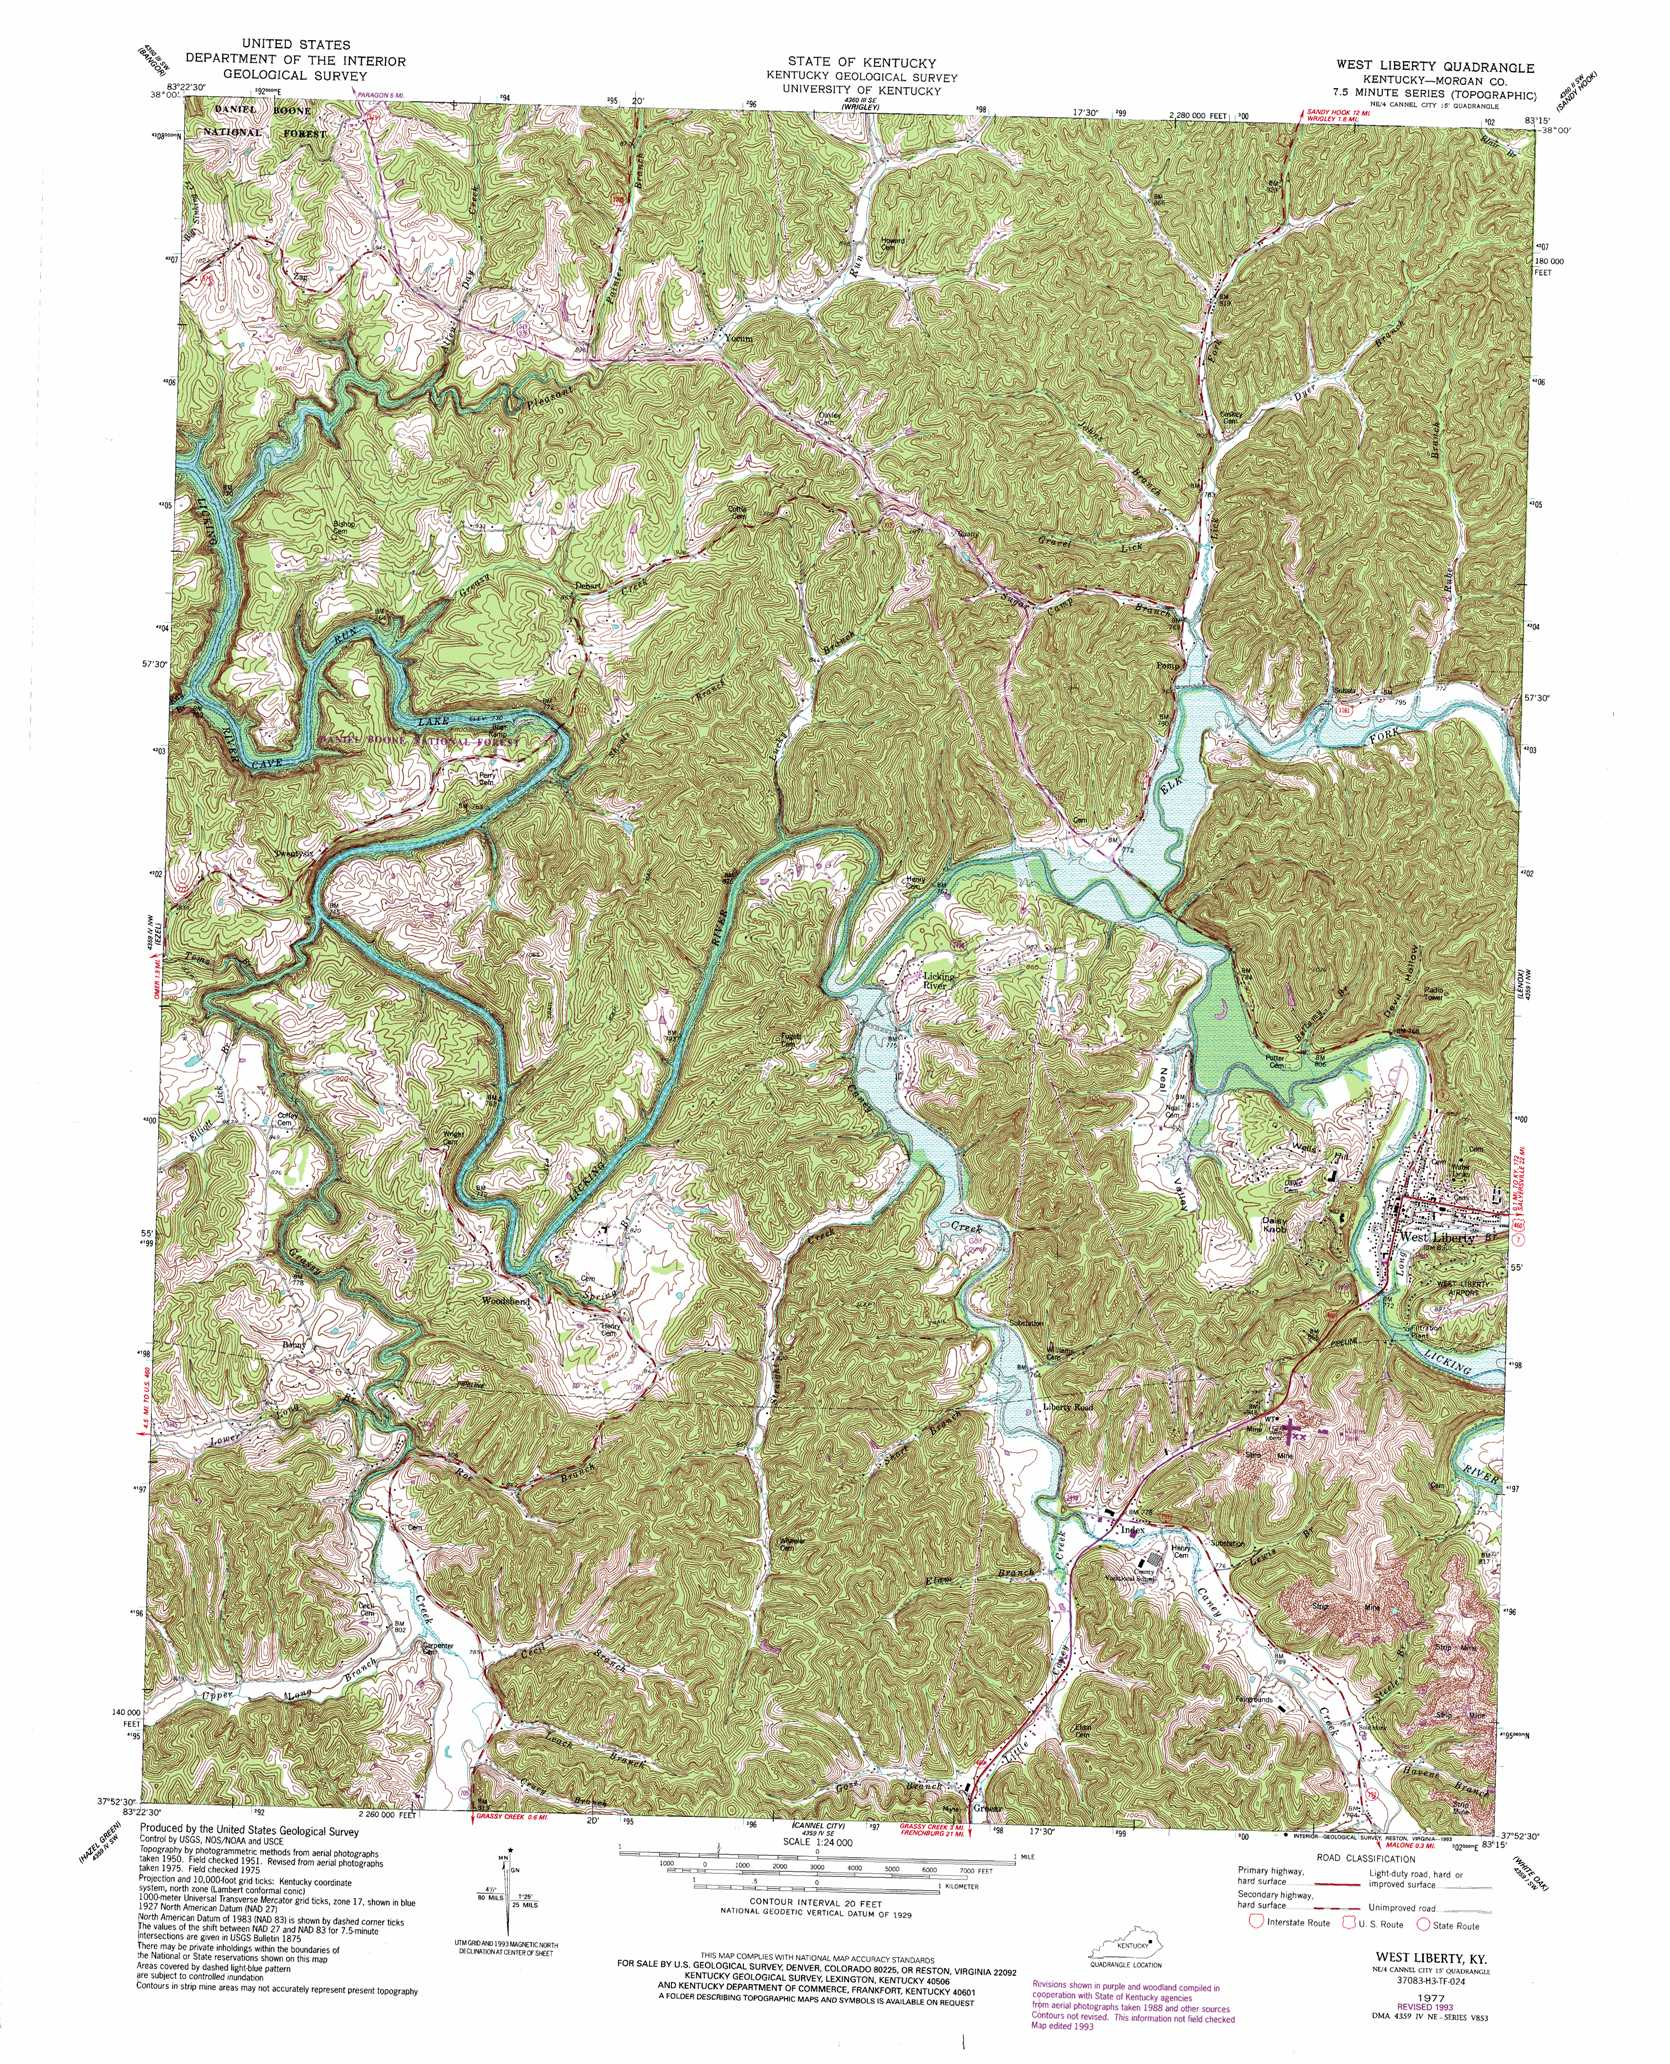 West Liberty topographic map, KY - USGS Topo Quad 37083h3 on michigan forests map, kentucky attractions map, kentucky trails map, missouri forests map, utah forests map, kentucky streams map, kentucky scenic byways map, kentucky golf courses map, kentucky water map, kentucky wildlife map, arizona forests map, kentucky county map, kentucky lakes map, nebraska forests map, kentucky fishing map, kentucky state capitol frankfort ky, georgia forests map, kentucky rest areas map, washington forests map, kansas forests map,